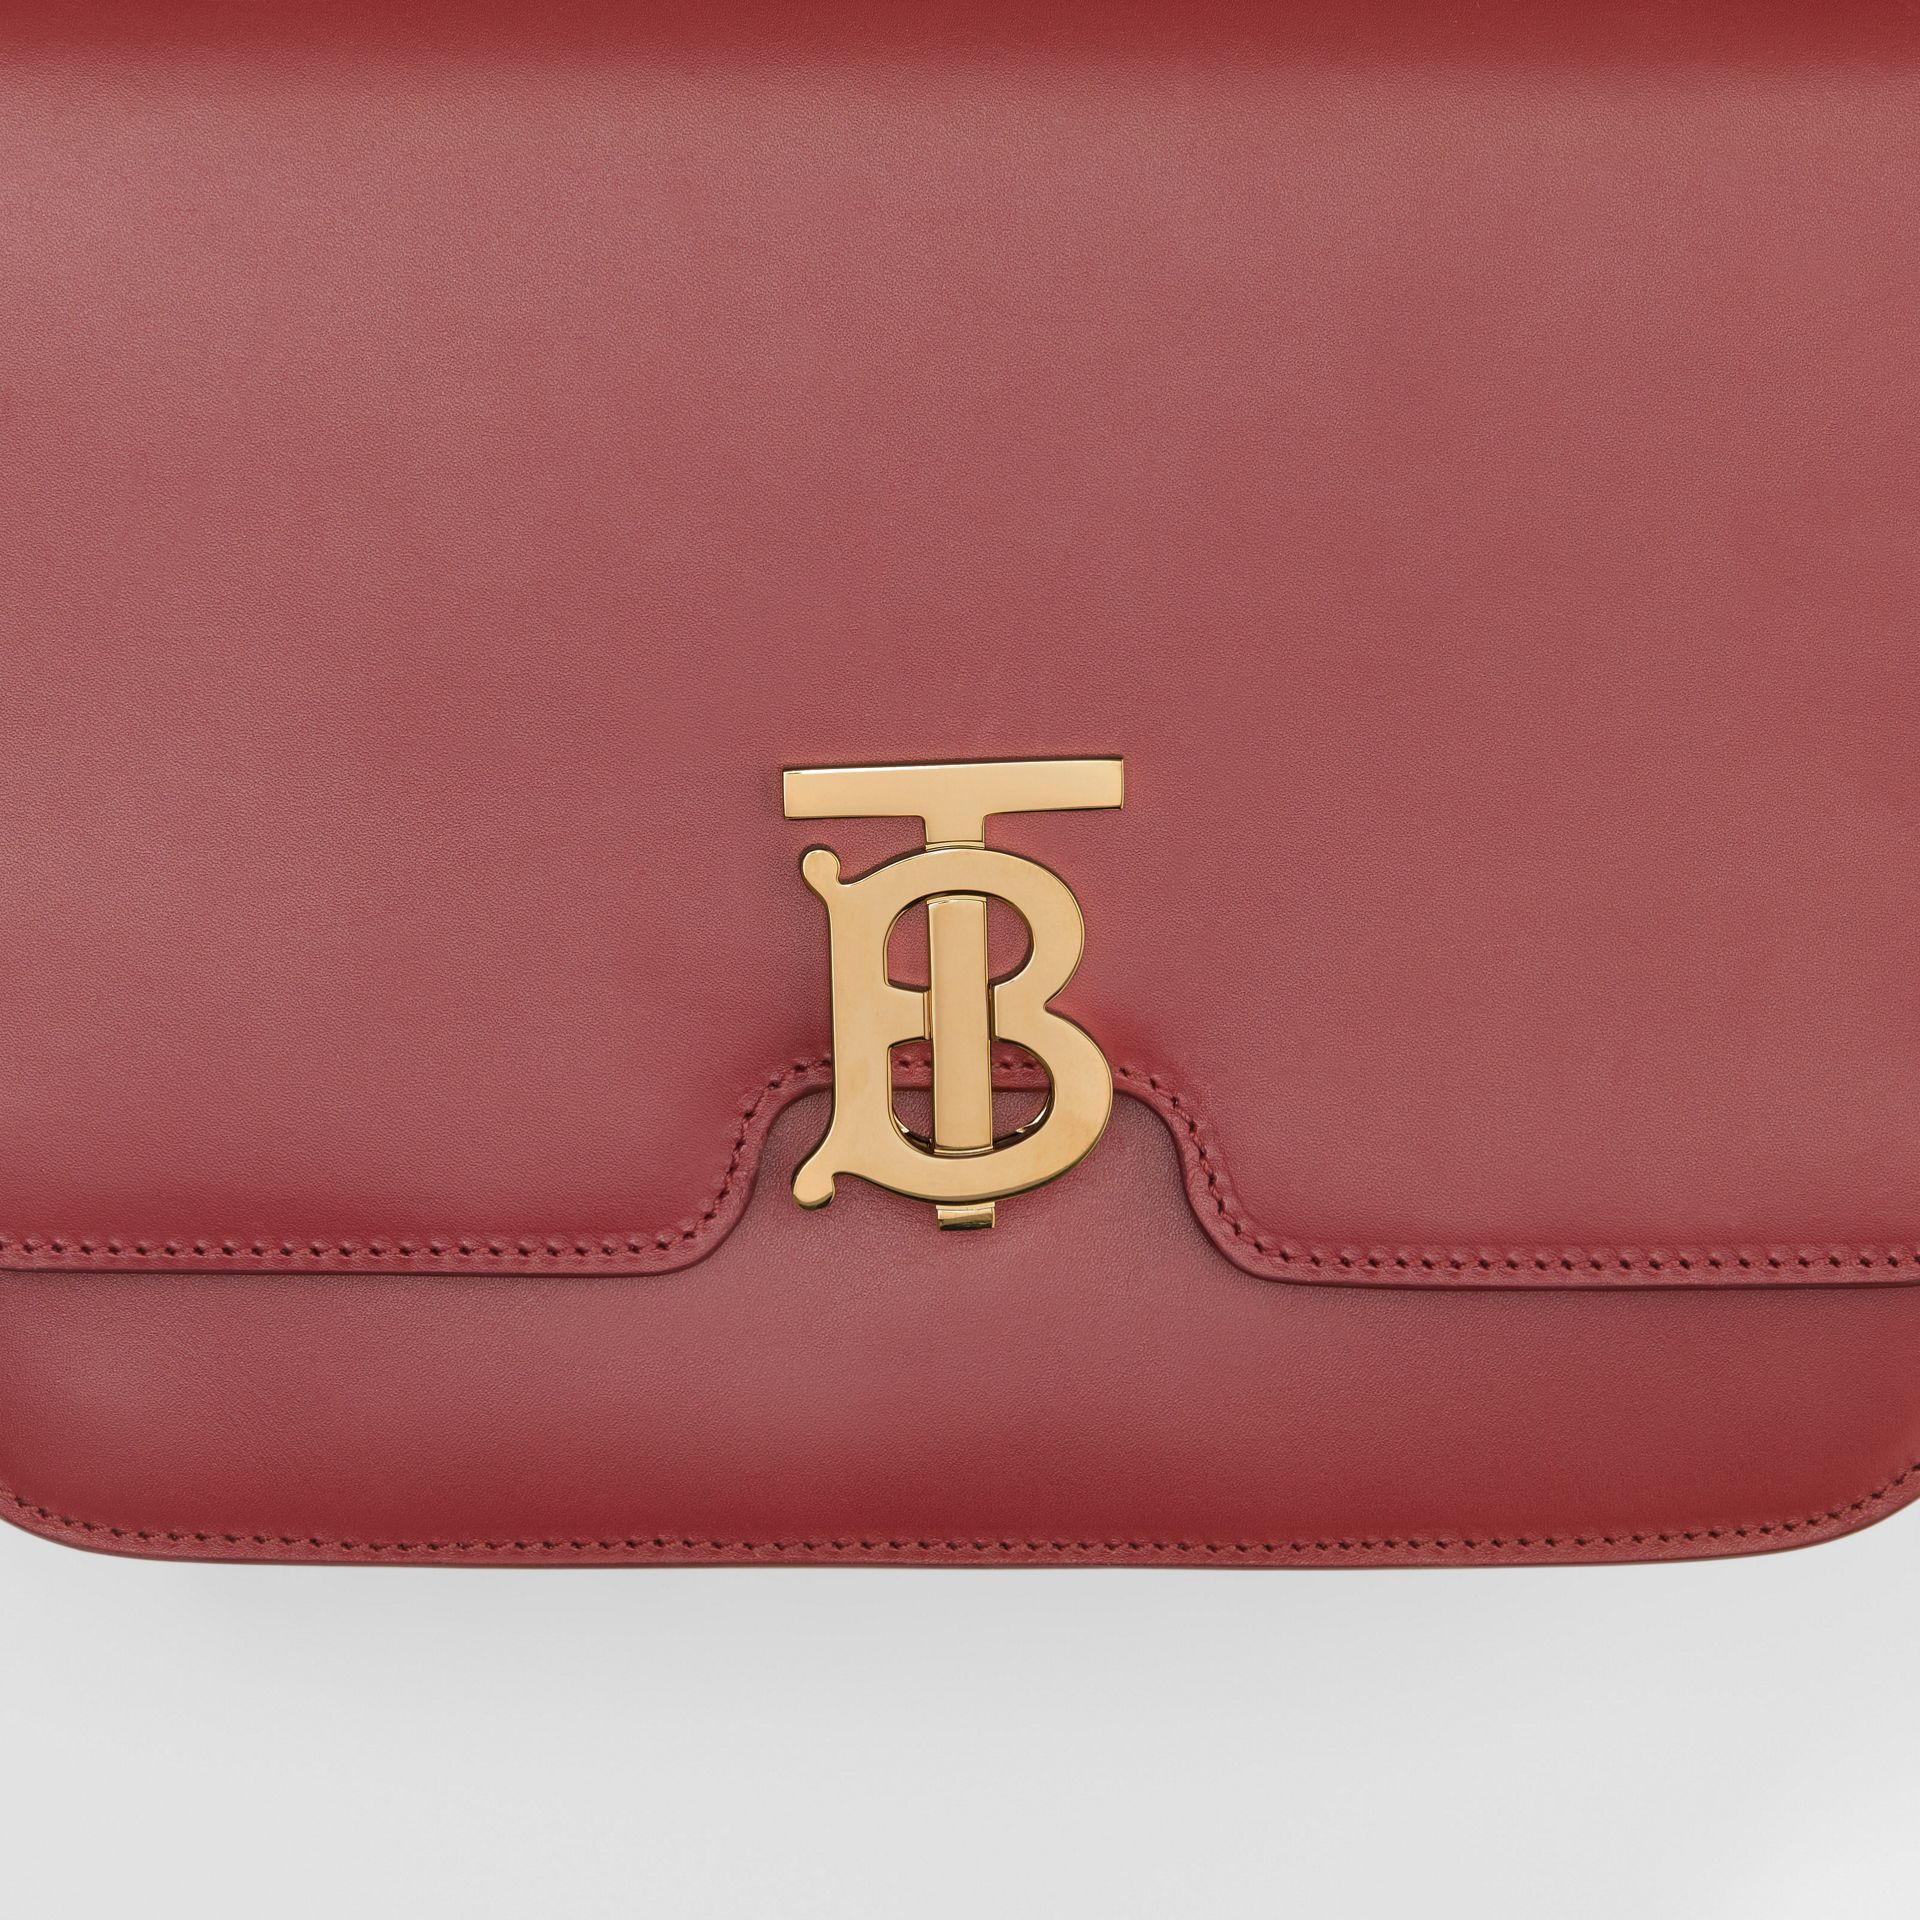 Medium Leather TB Bag in Crimson - Women | Burberry - gallery image 1